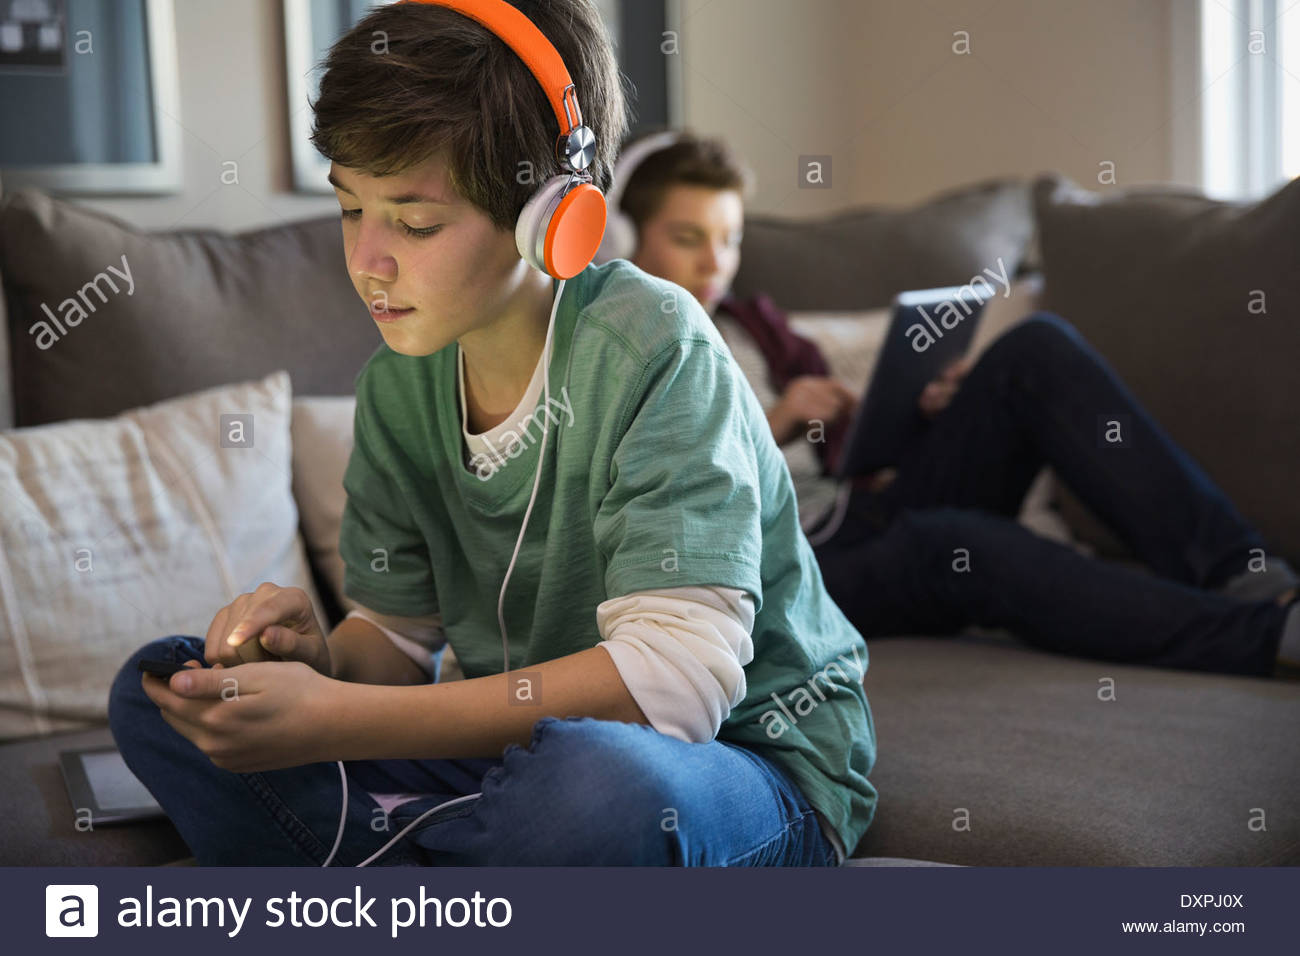 Boy listening to music on smart phone - Stock Image